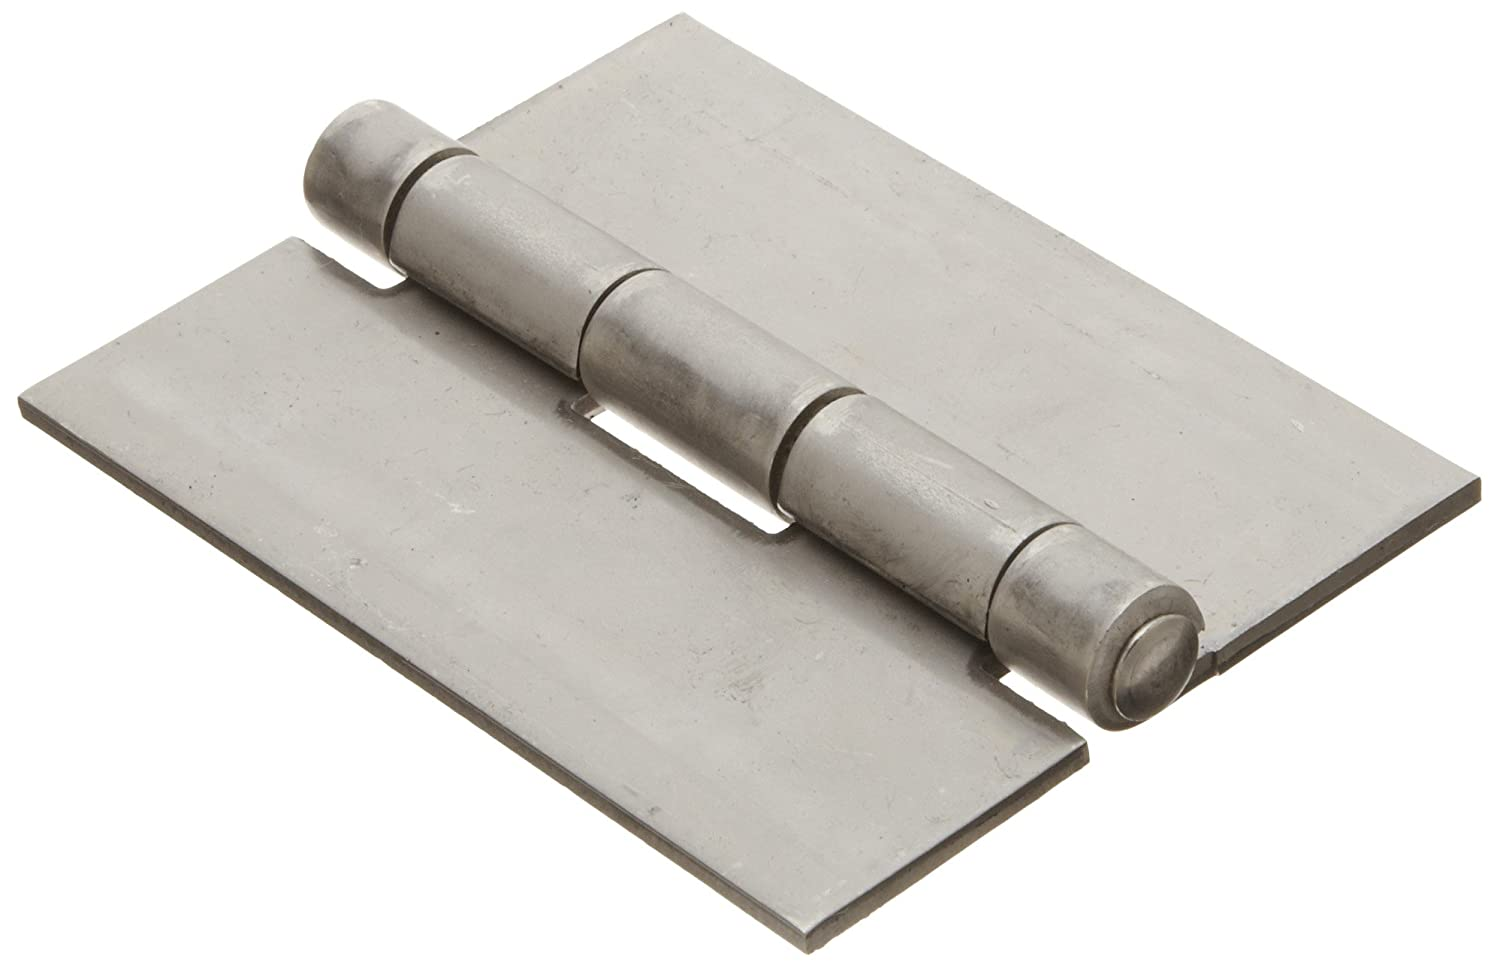 Stainless Steel 304 Surface Mount Butt Hinge without Hole, 2B Mill Finish, 0.120' Leaf Thickness, 3' Open Width, 1/4' Pin Diameter, 4' Long, Non-Removable Pin (Pack 1) 0.120 Leaf Thickness 3 Open Width 1/4 Pin Diameter 4 Long Marlboro